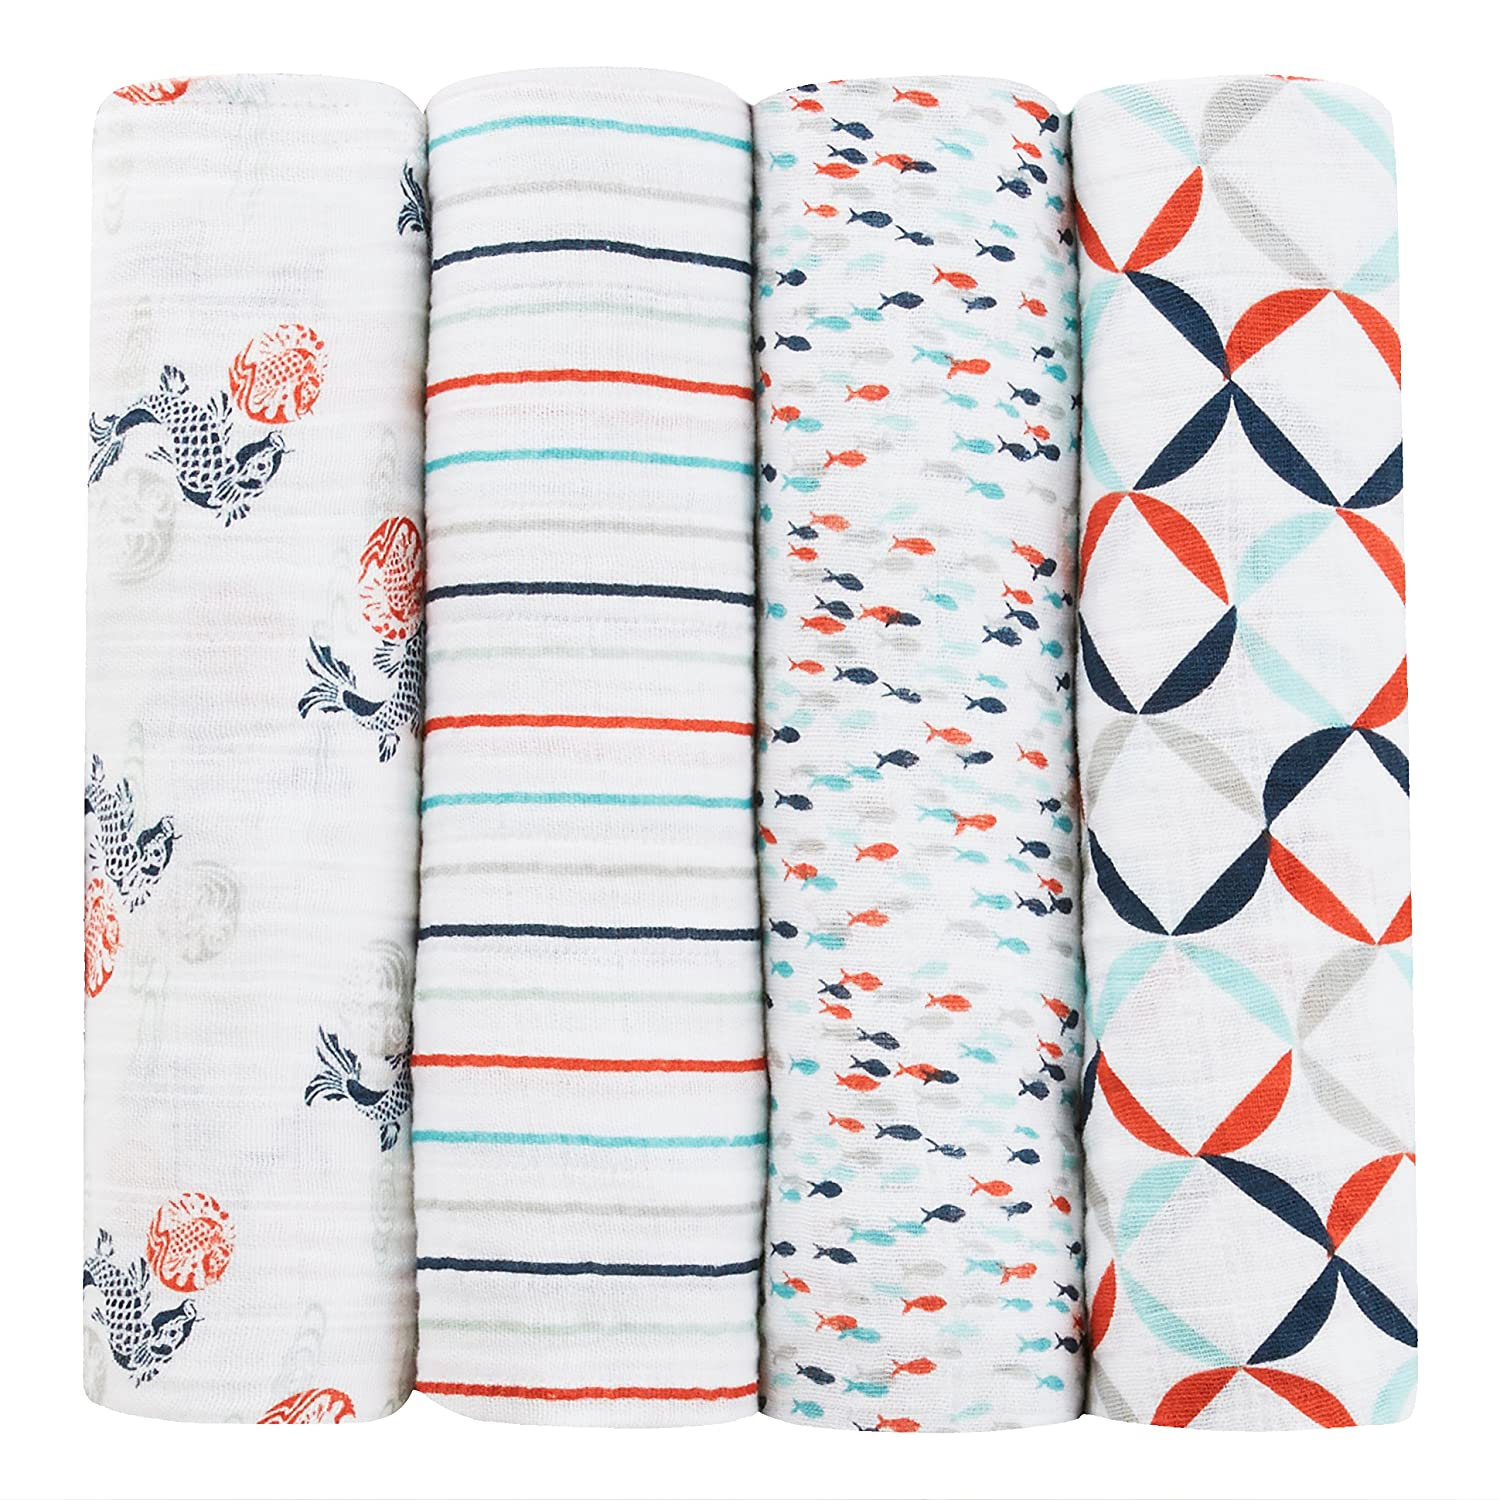 aden + anais Tea Collection and Swaddles, Fish Pond TC2001F